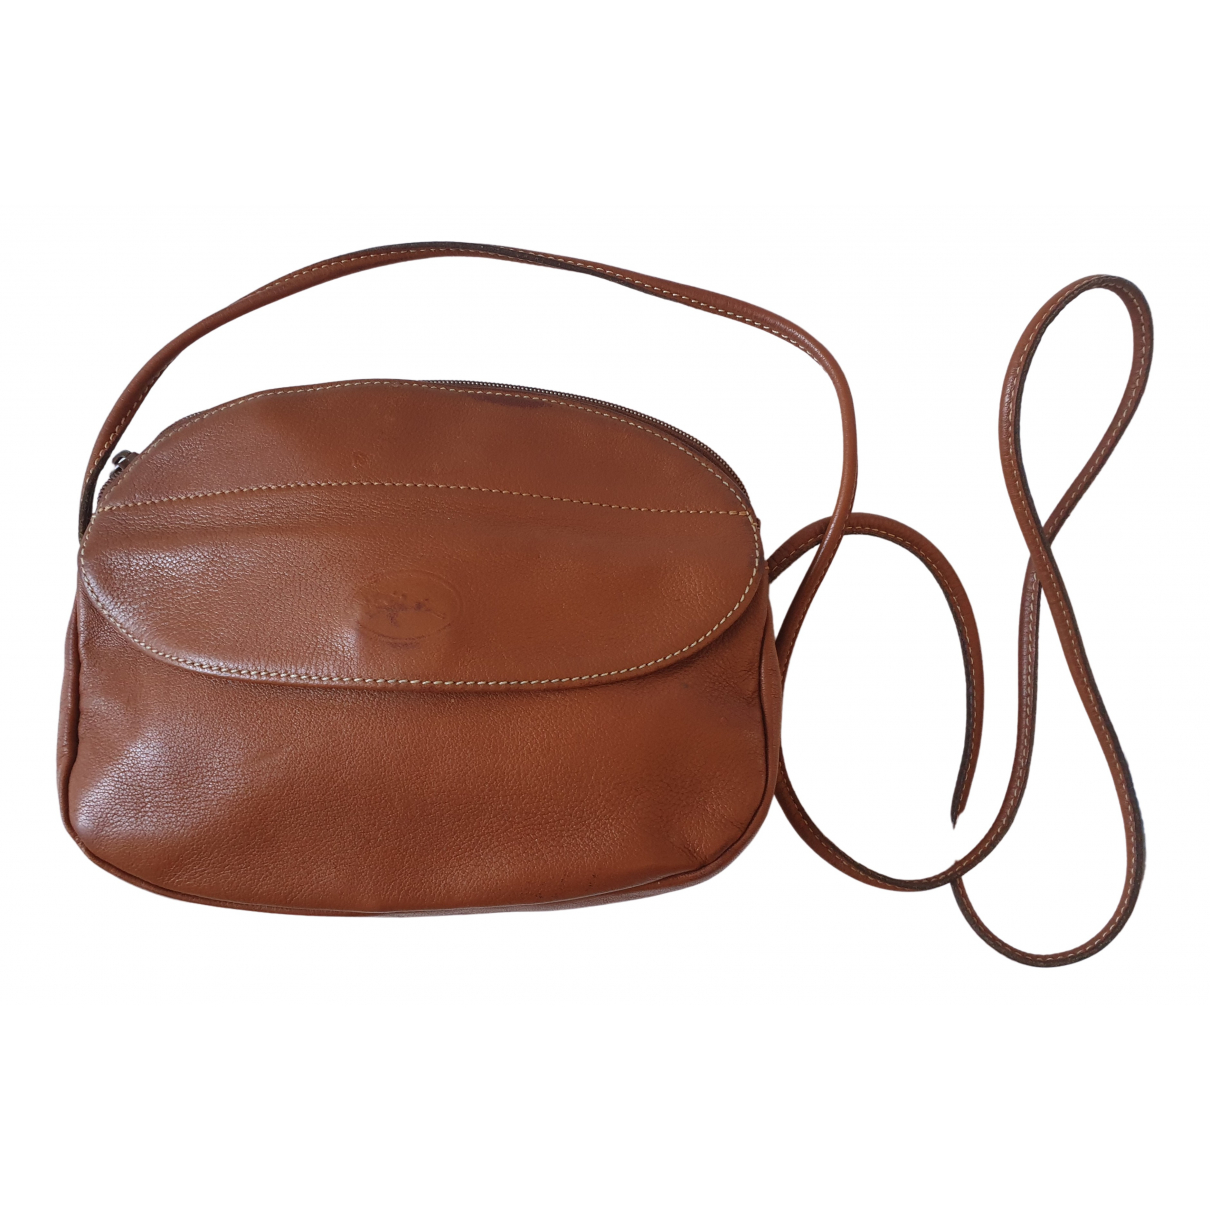 Longchamp N Brown Leather handbag for Women N